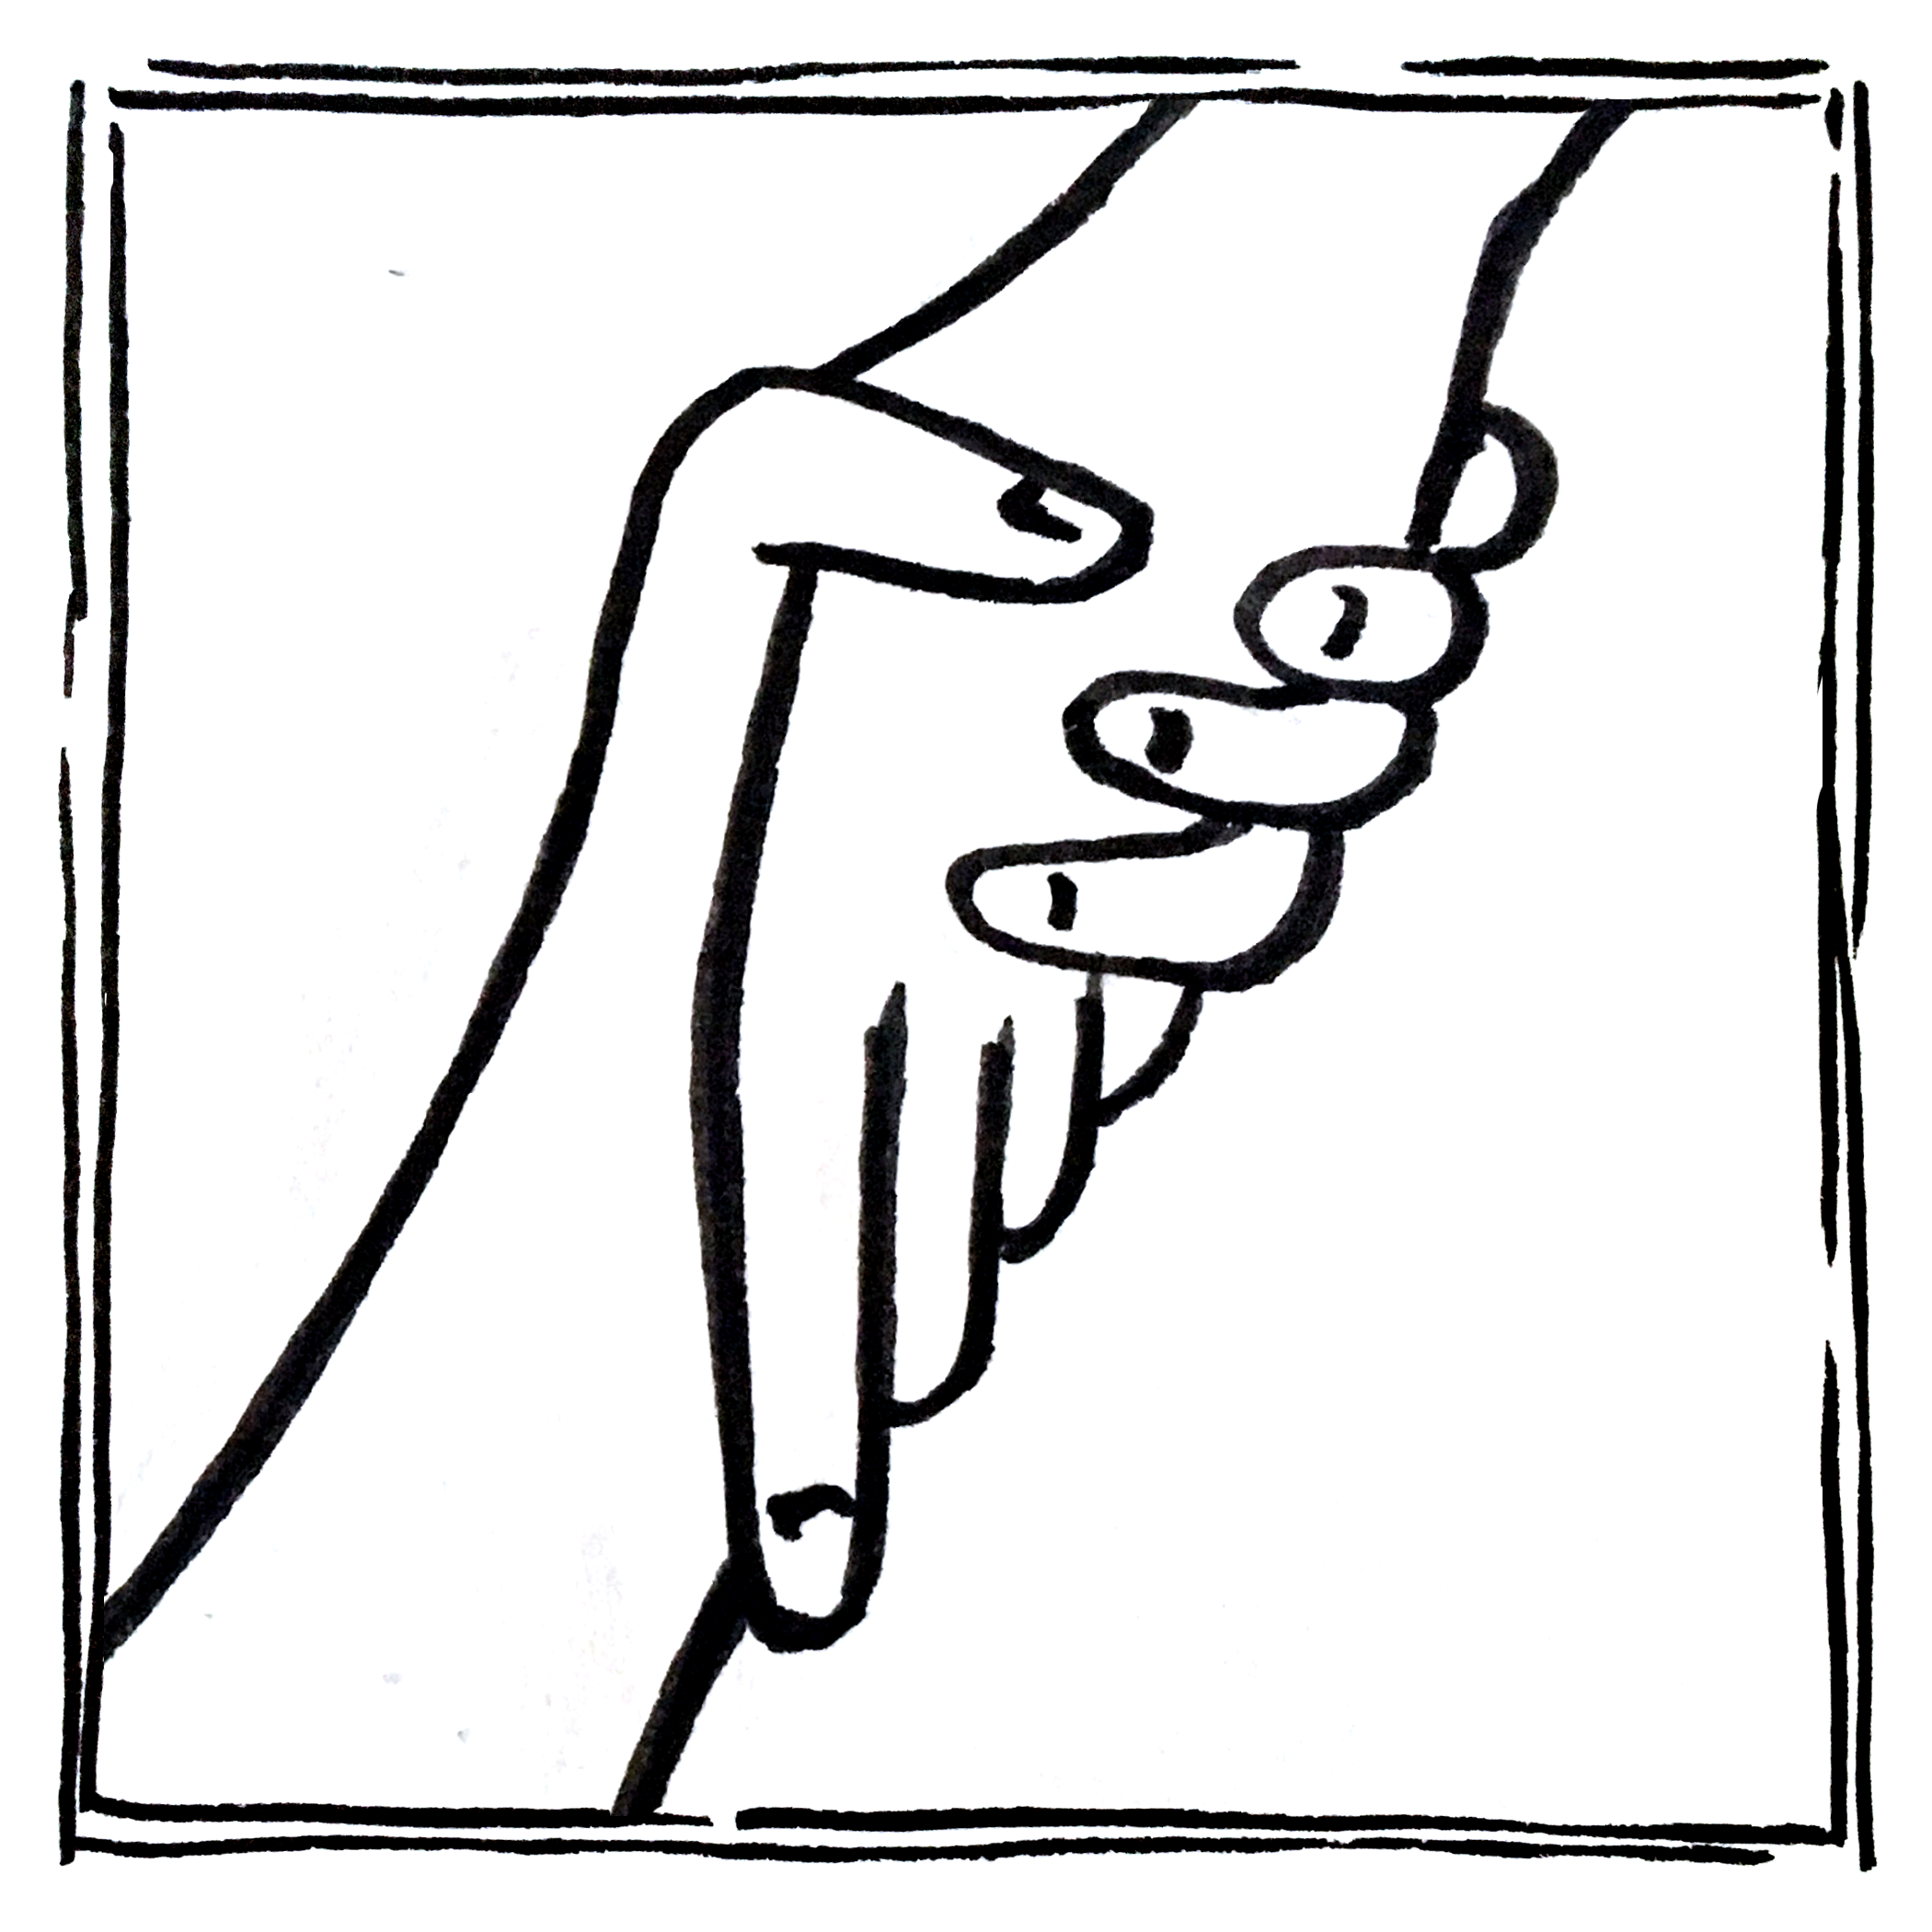 Product design icon shaking hands